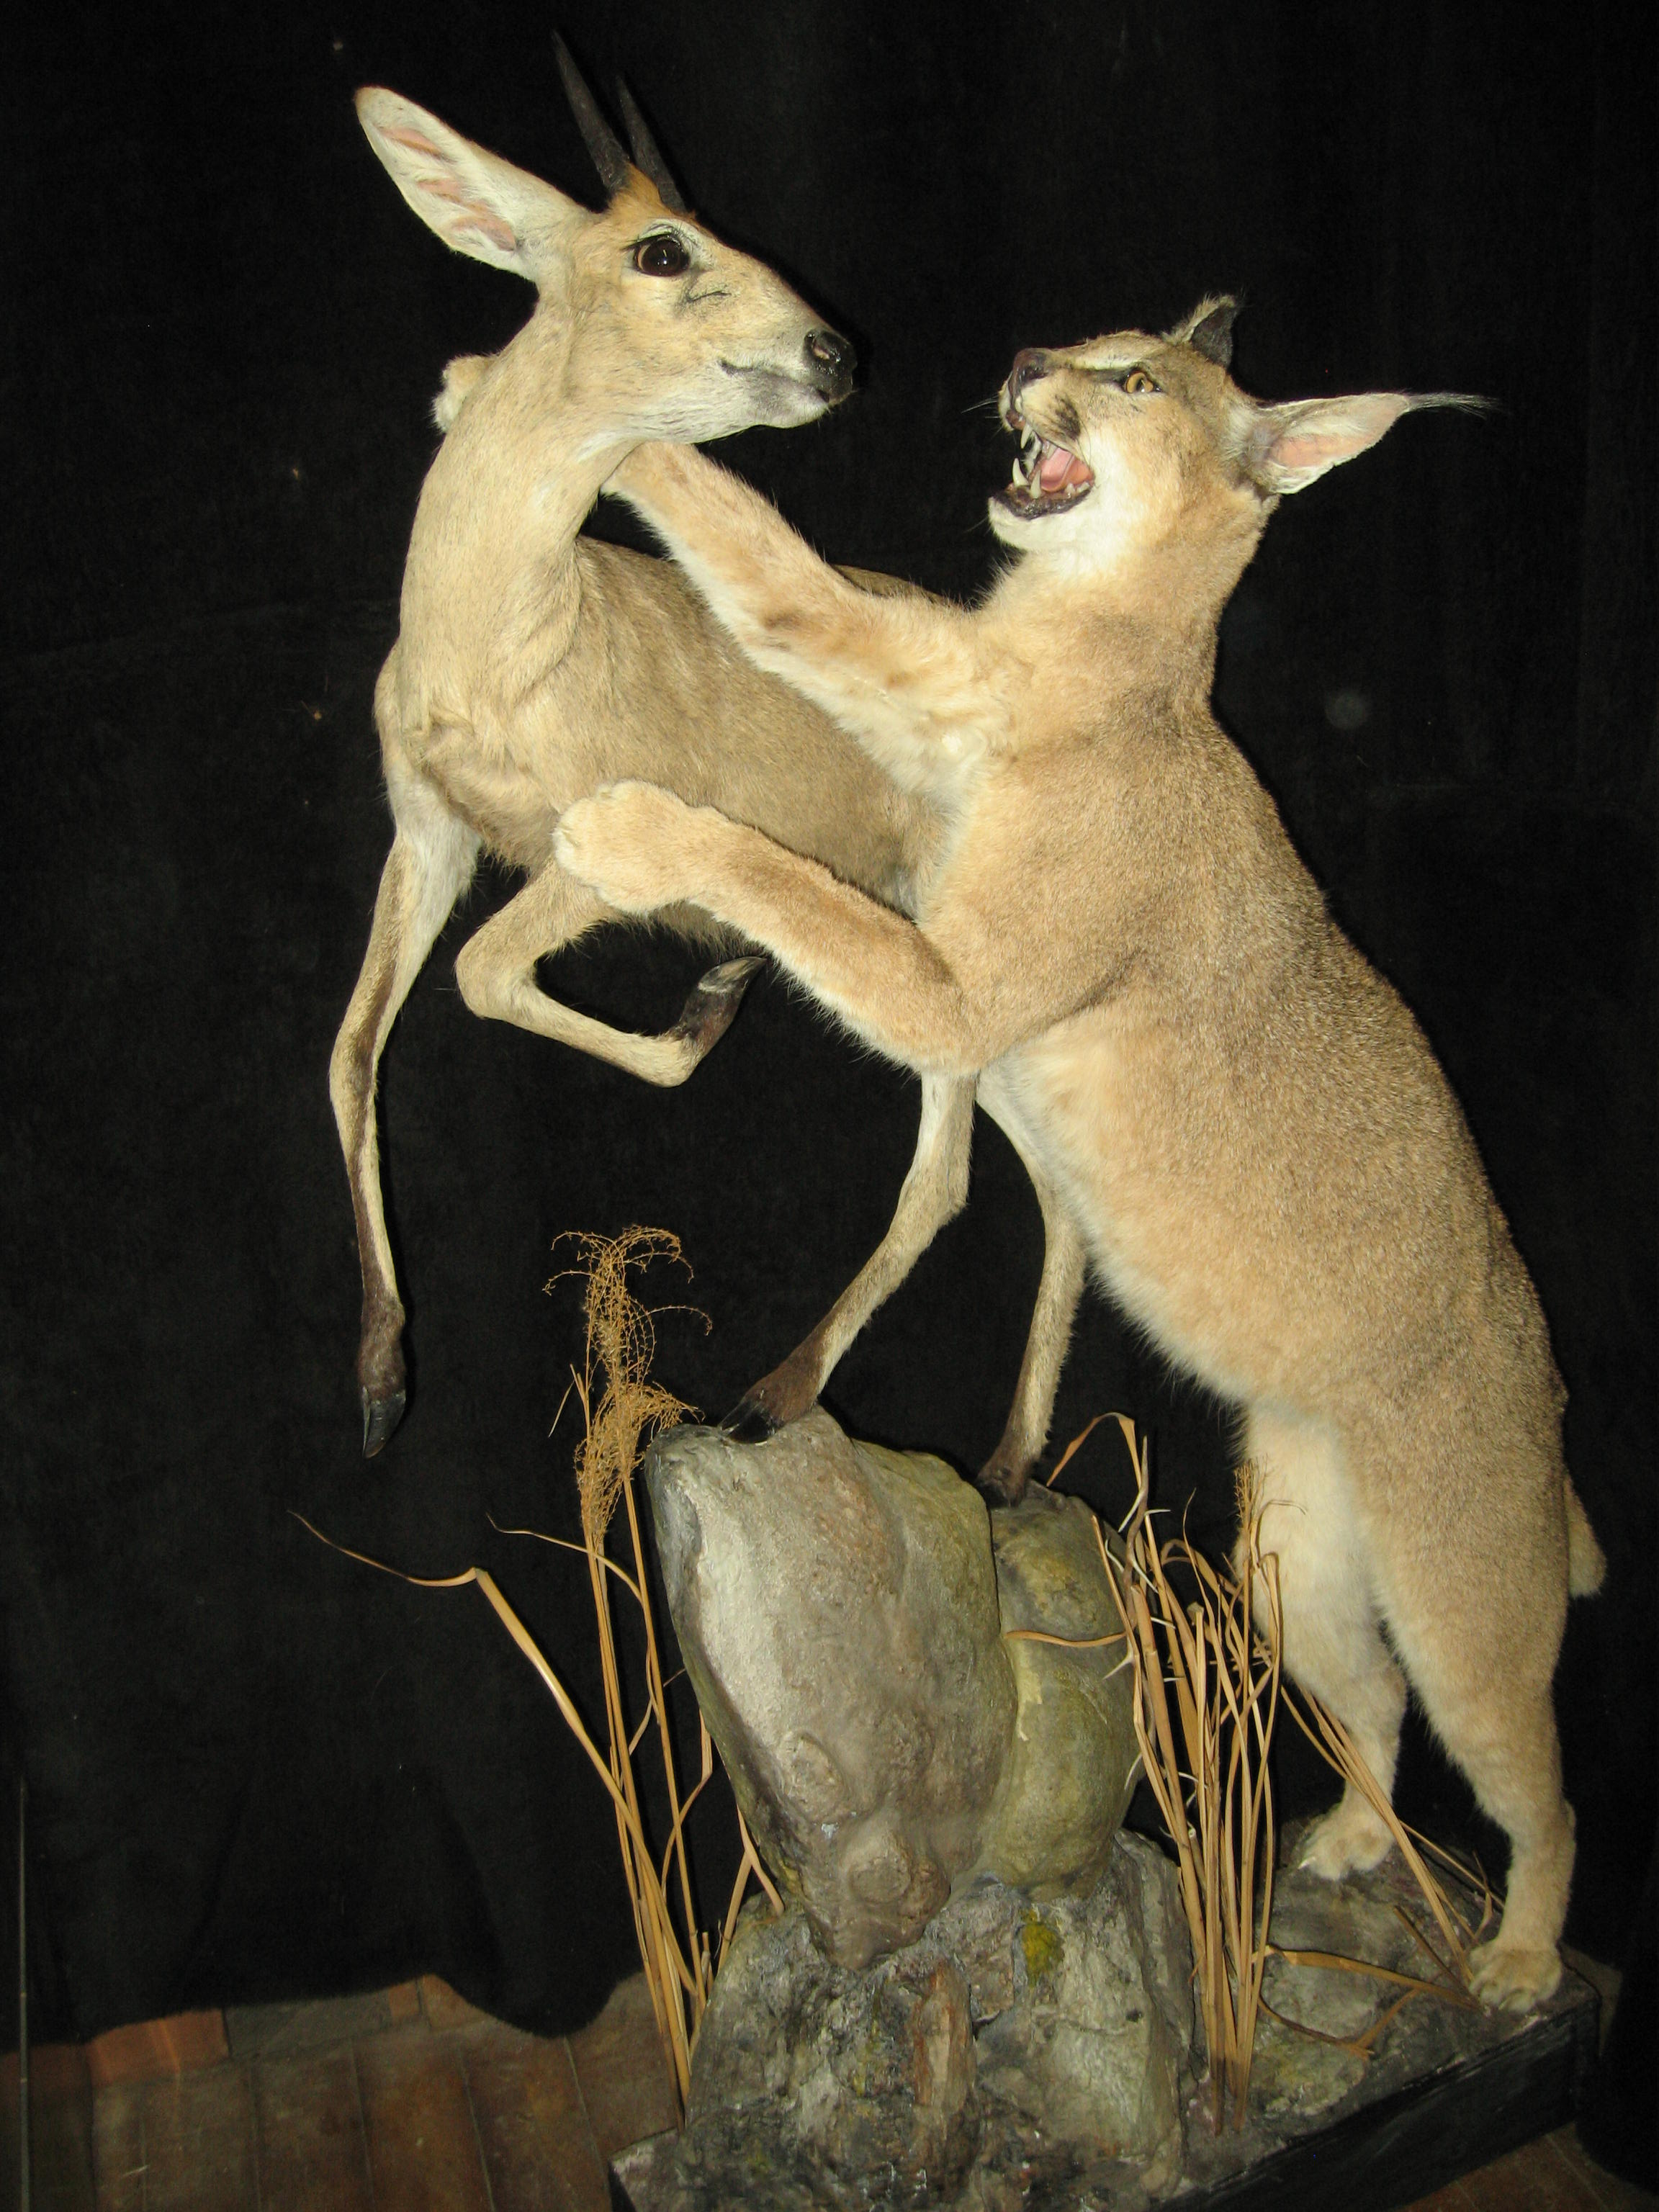 Caracal attacking Duiker